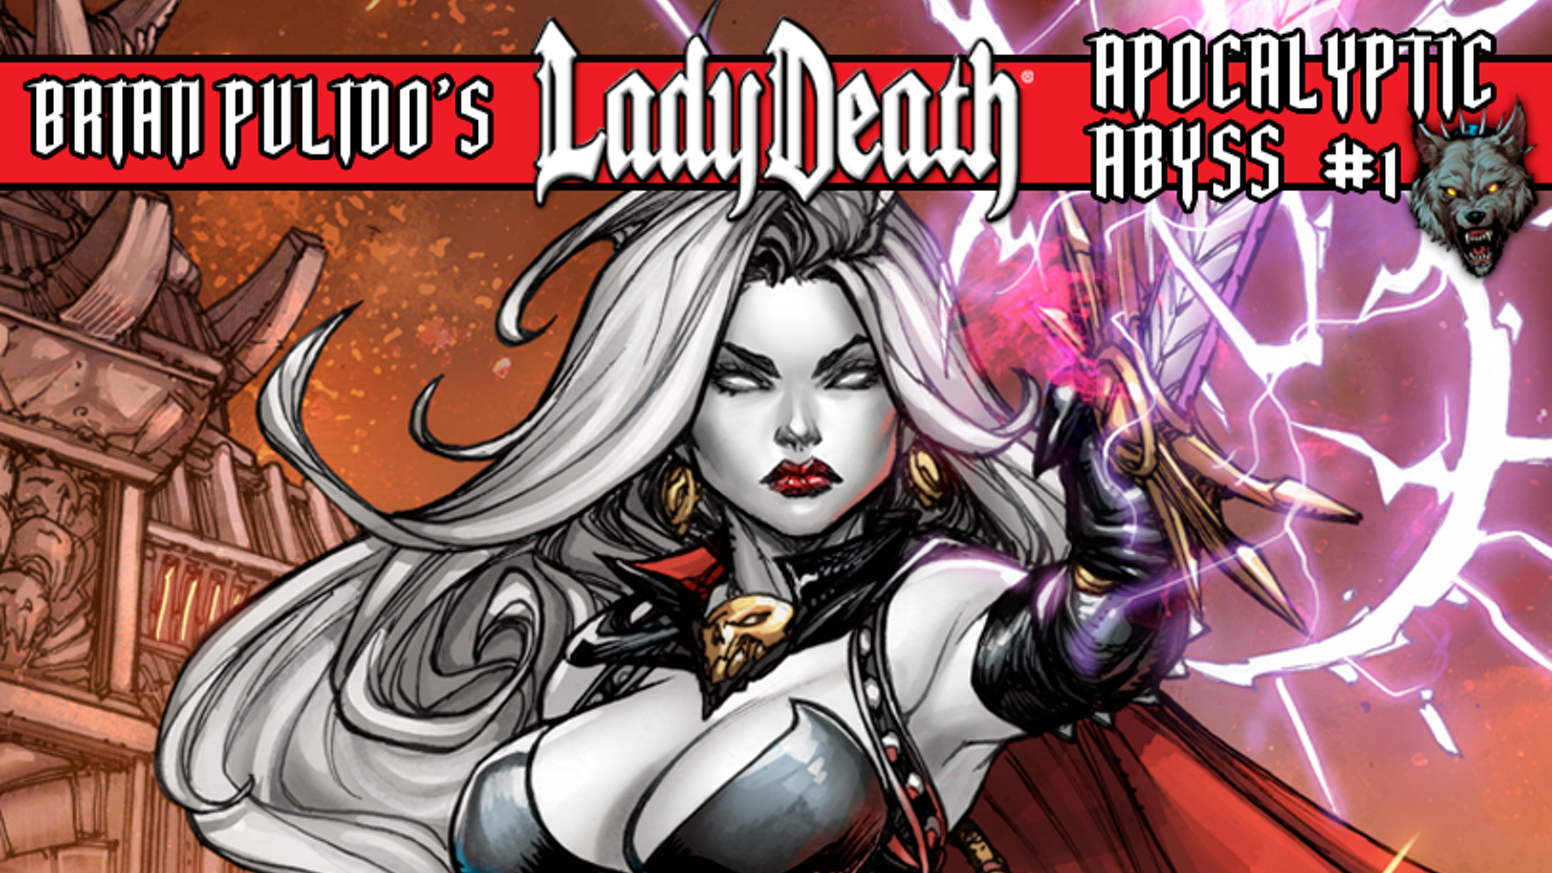 BRIAN PULIDO'S NEWEST: LADY DEATH: APOCALYPTIC ABYSS #1! is the top crowdfunding project launched today. BRIAN PULIDO'S NEWEST: LADY DEATH: APOCALYPTIC ABYSS #1! raised over $230145 from 1988 backers. Other top projects include CO2: Second Chance, Sonic the Hedgehog: Battle Racers, I Roved Out in Search of Truth and Love...